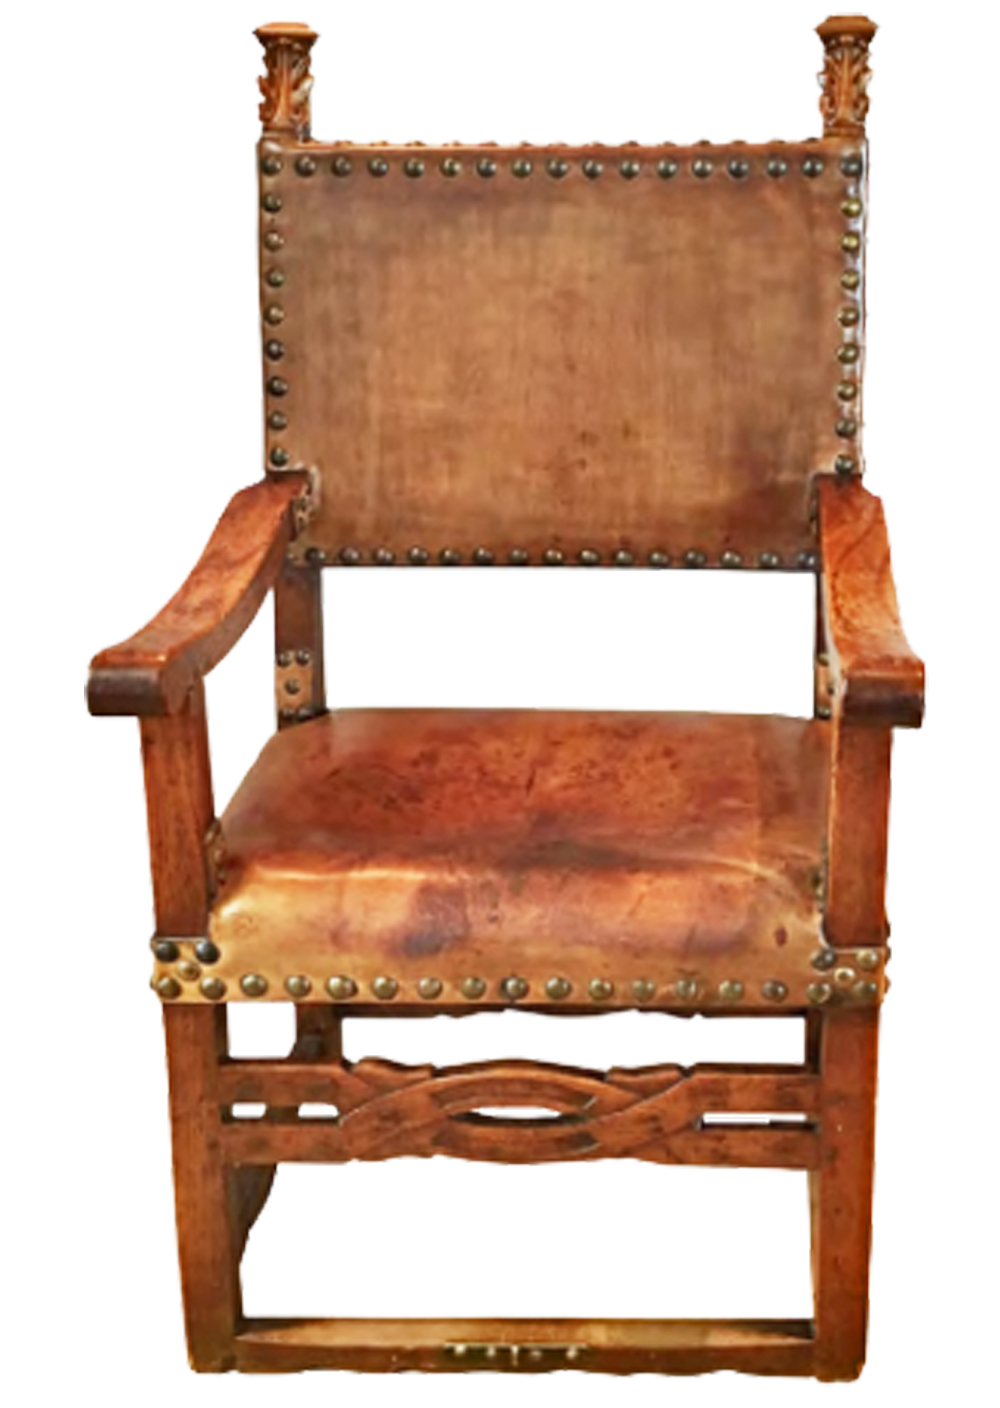 A 17th Century Continental Walnut and Leather Baroque Armchair No. 4754